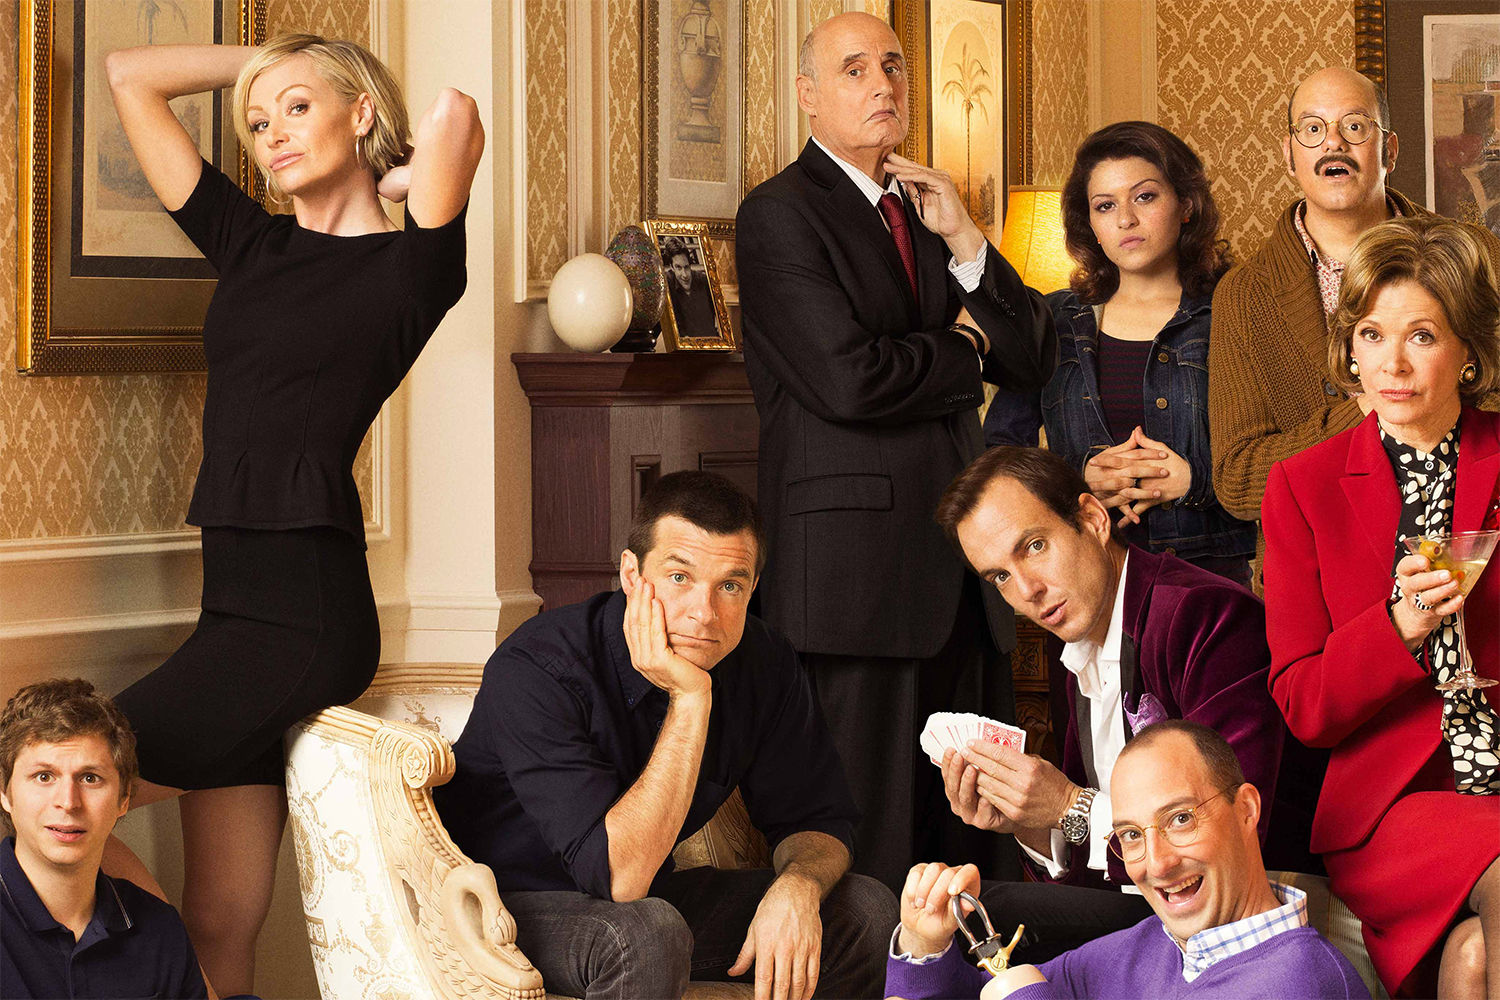 'Arrested Development' Season 5 Cast